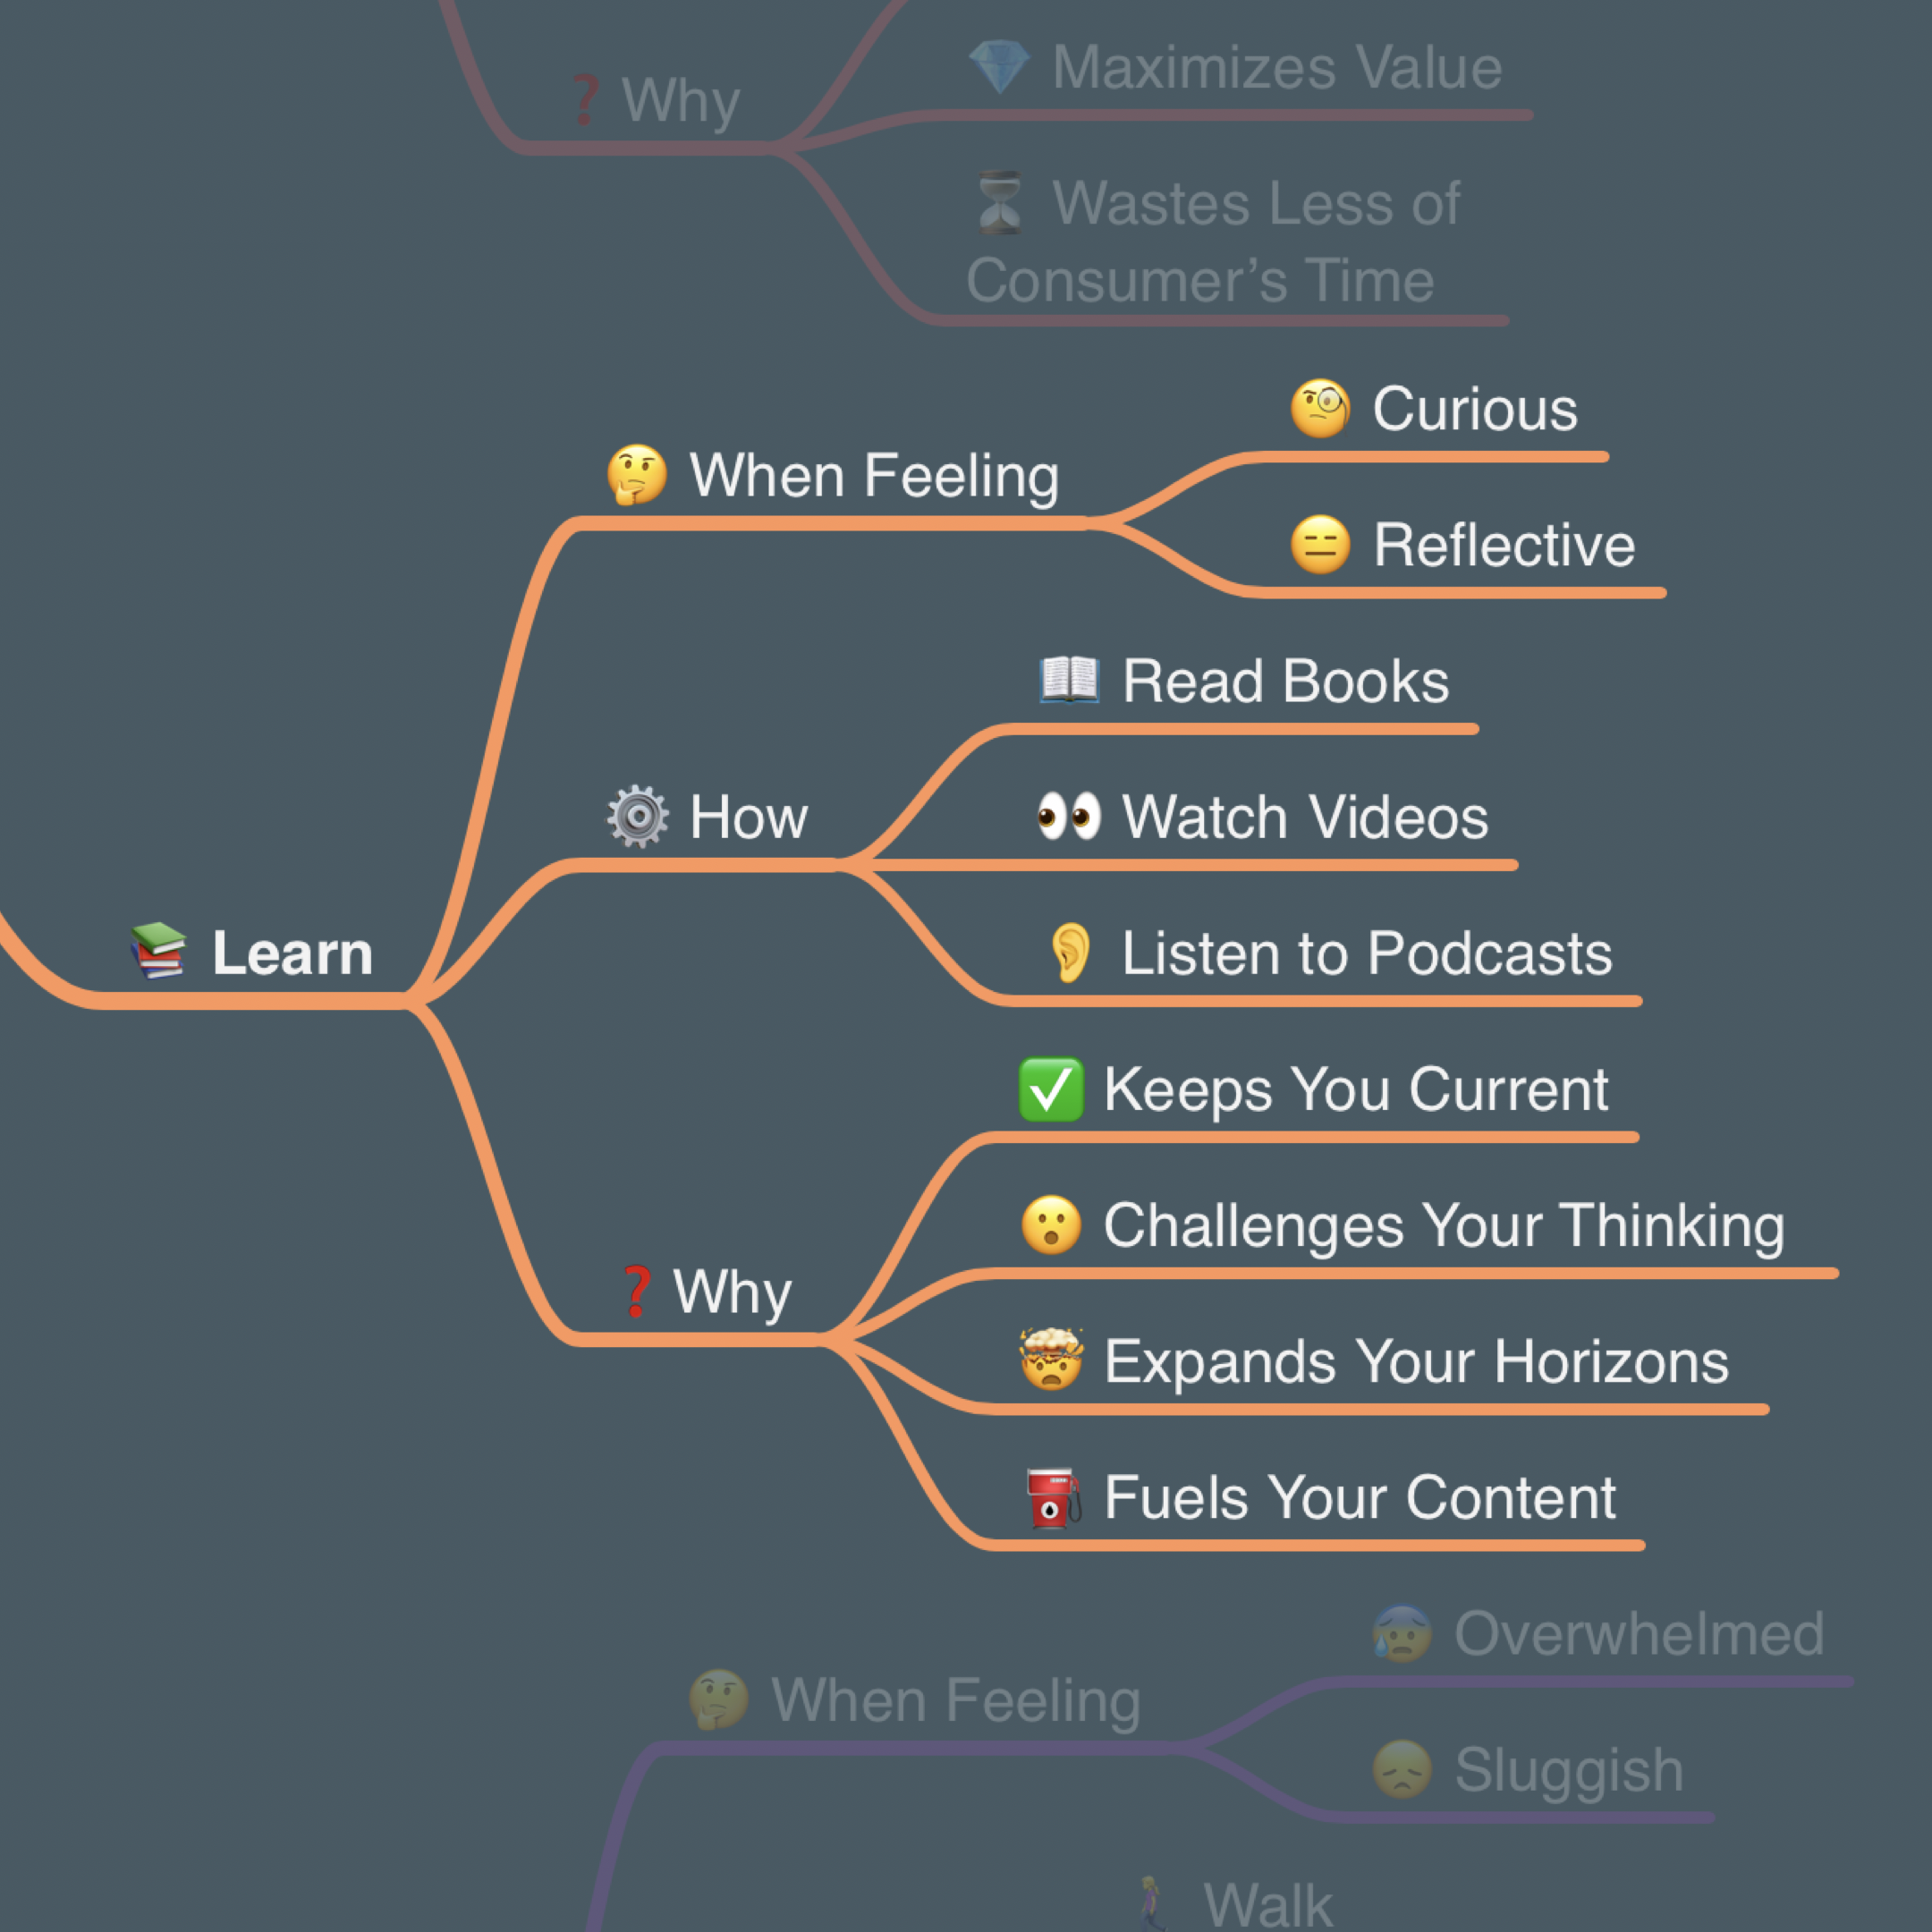 Sean's Content Creation Flywheel - Learn